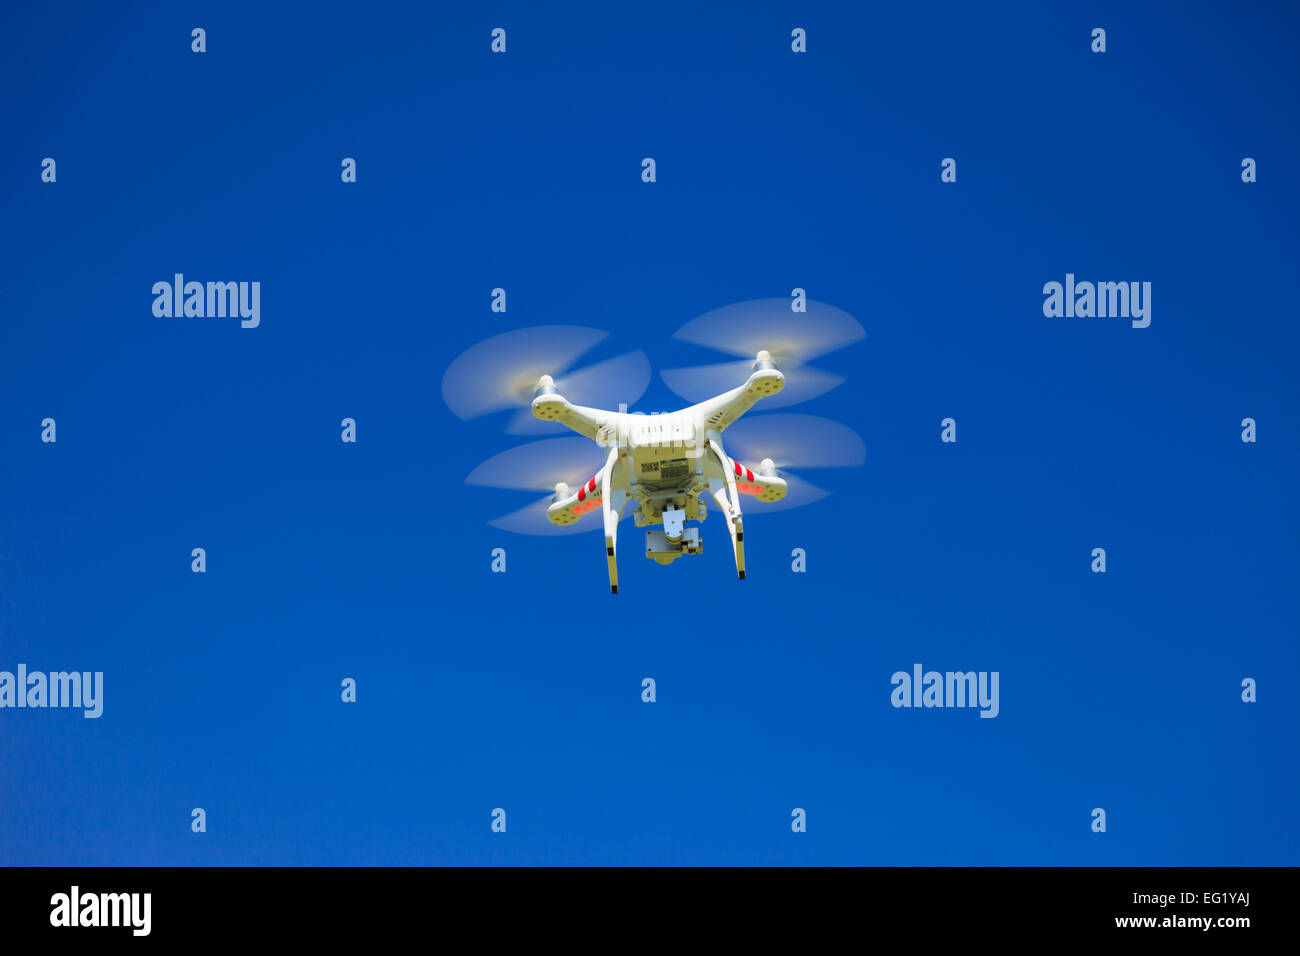 A view from below of a flying drone with a gimbal and camera attached. Drone, photography, flying, surveillance - Stock Image